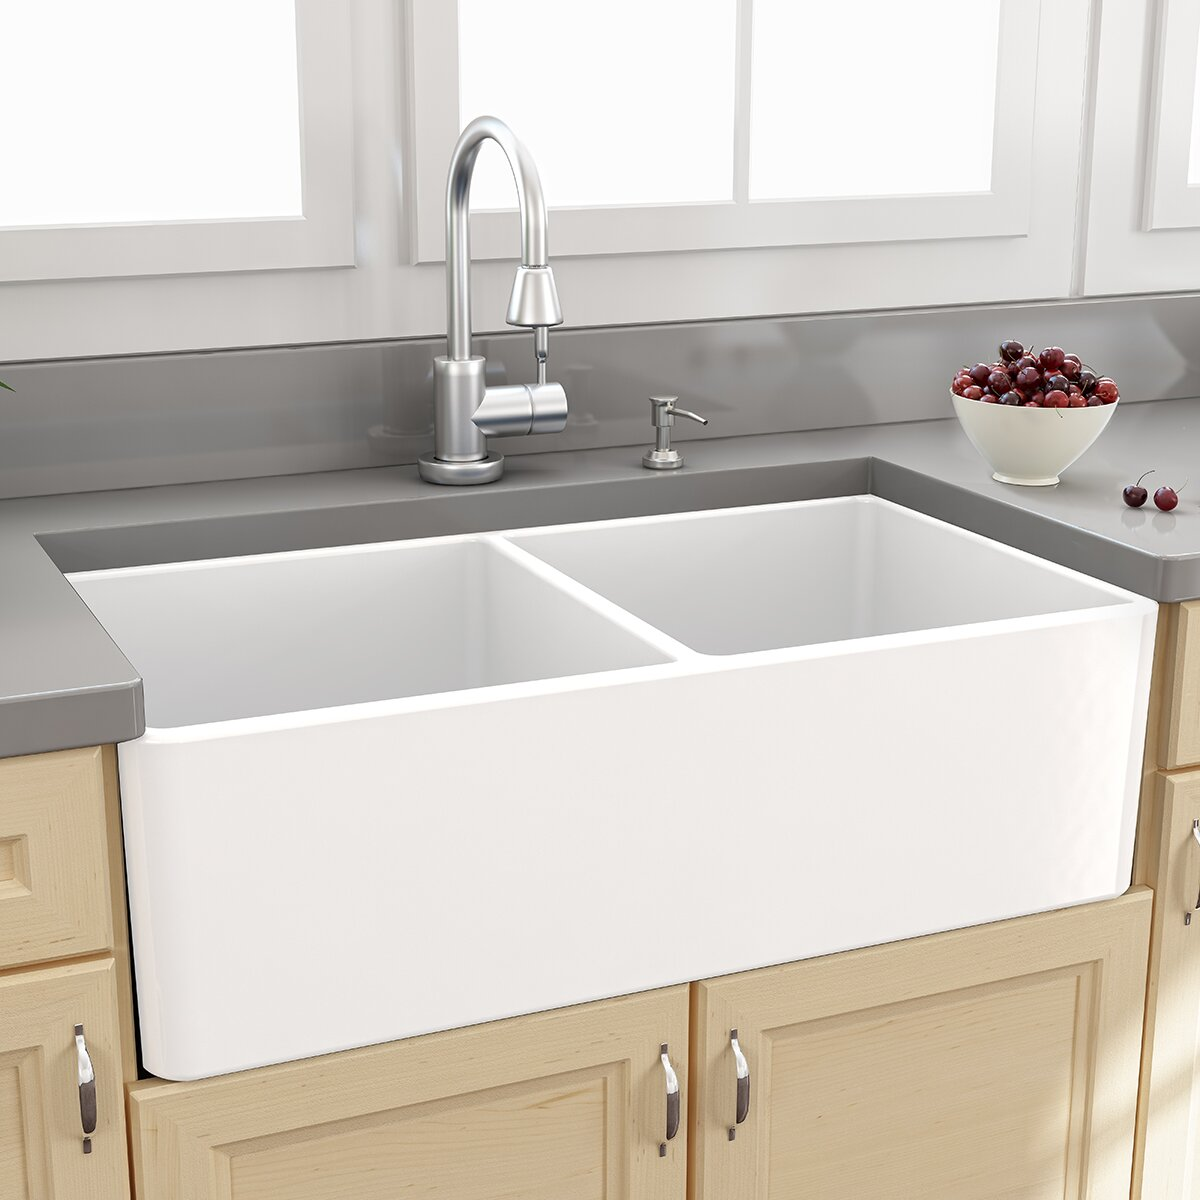 kitchen sink grates nantucket sinks cape 33 quot x 18 quot bowl kitchen sink 2729